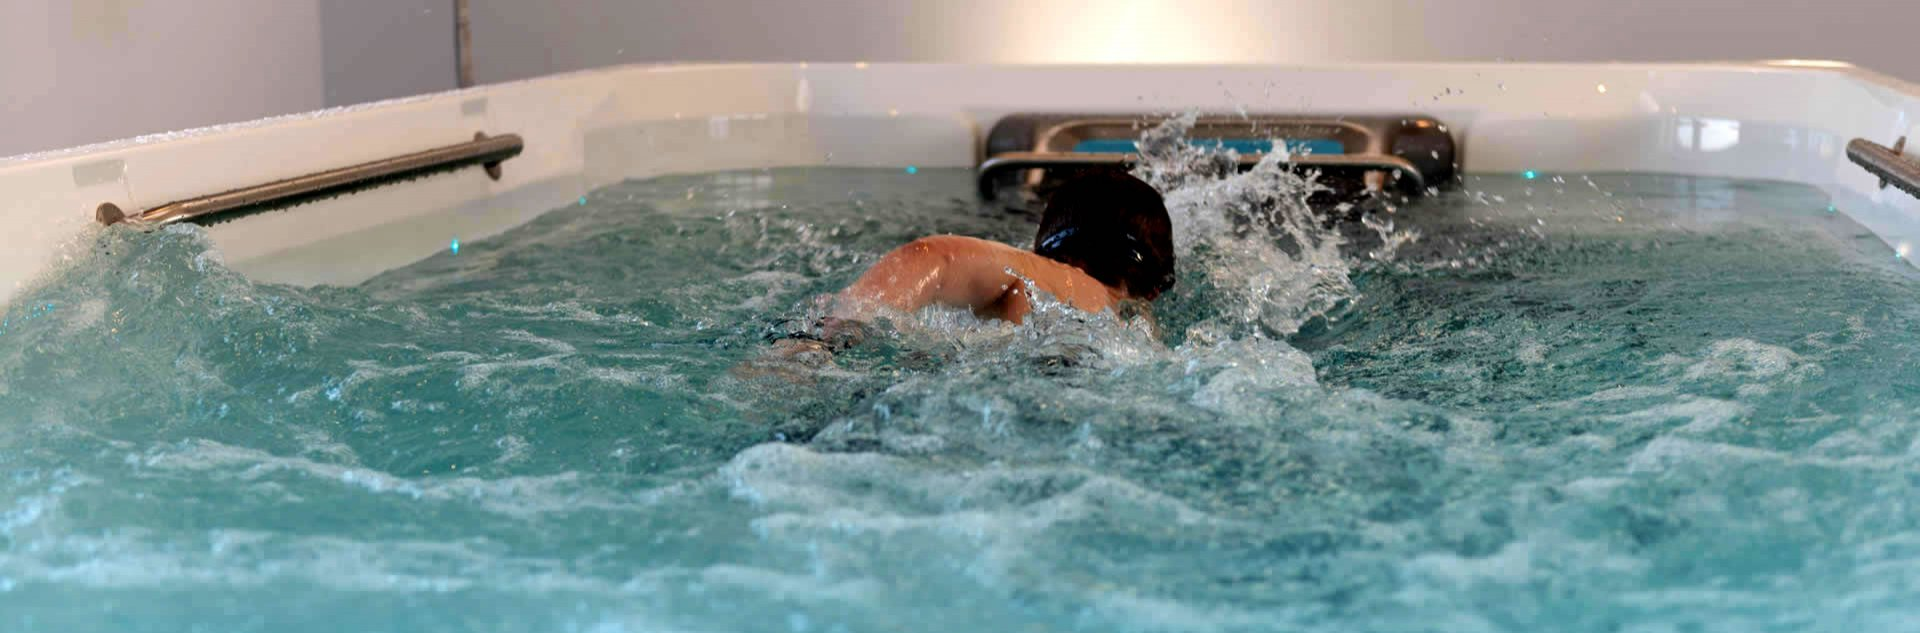 Swimming pool rural swim private leisure facility - Swimming pools in dumfries and galloway ...